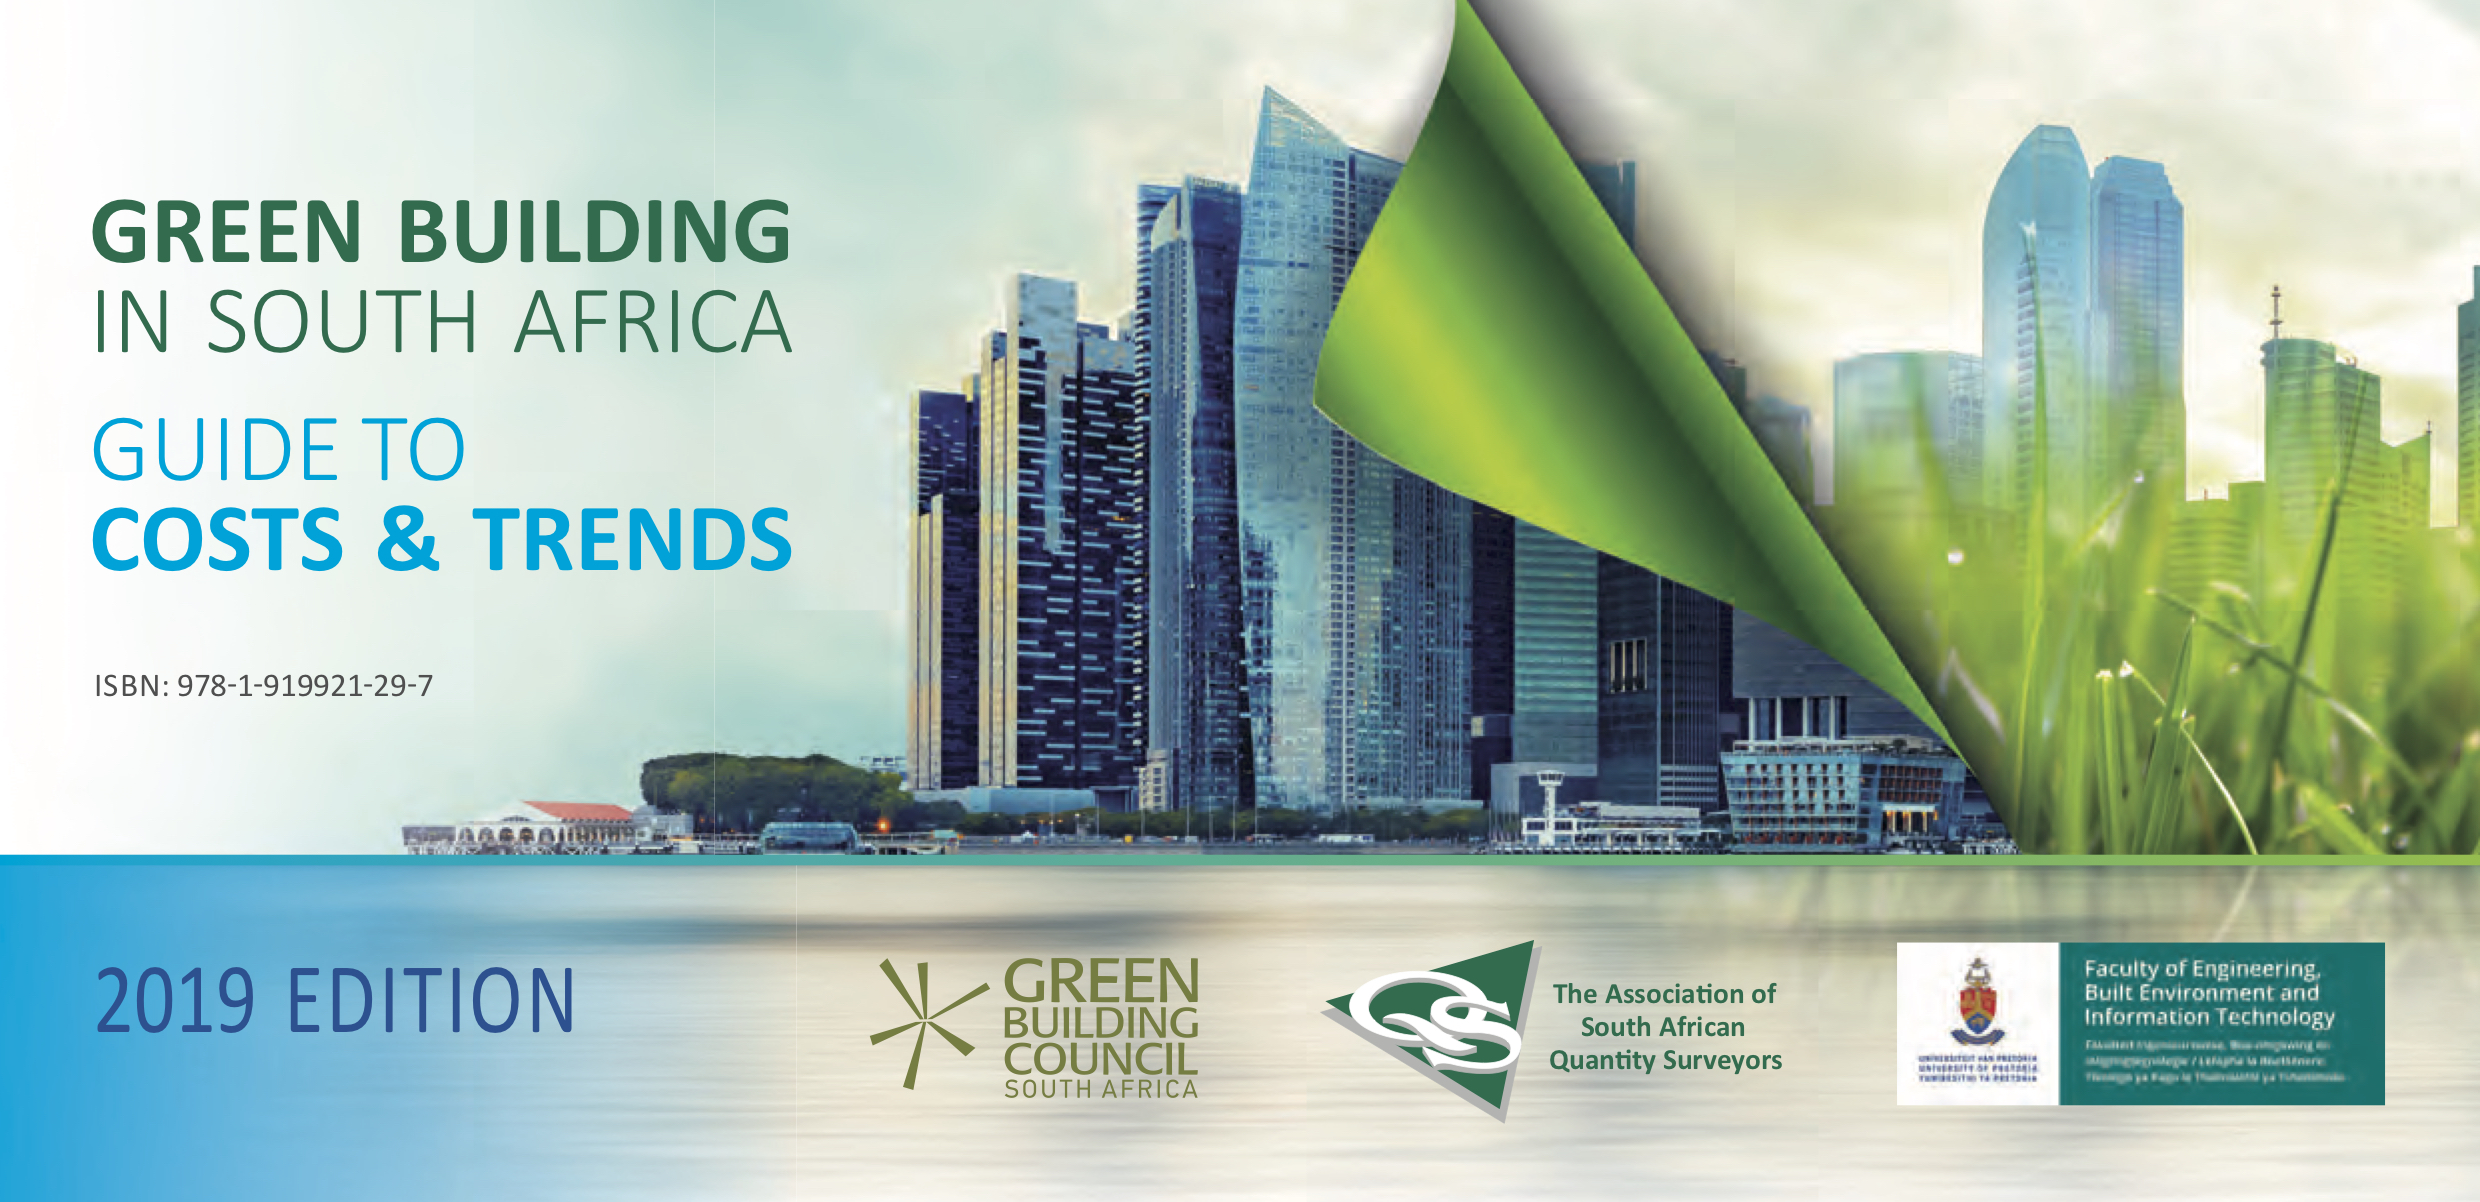 The 2019 edition of Green Building in South Africa: Guide to Costs & Trends.